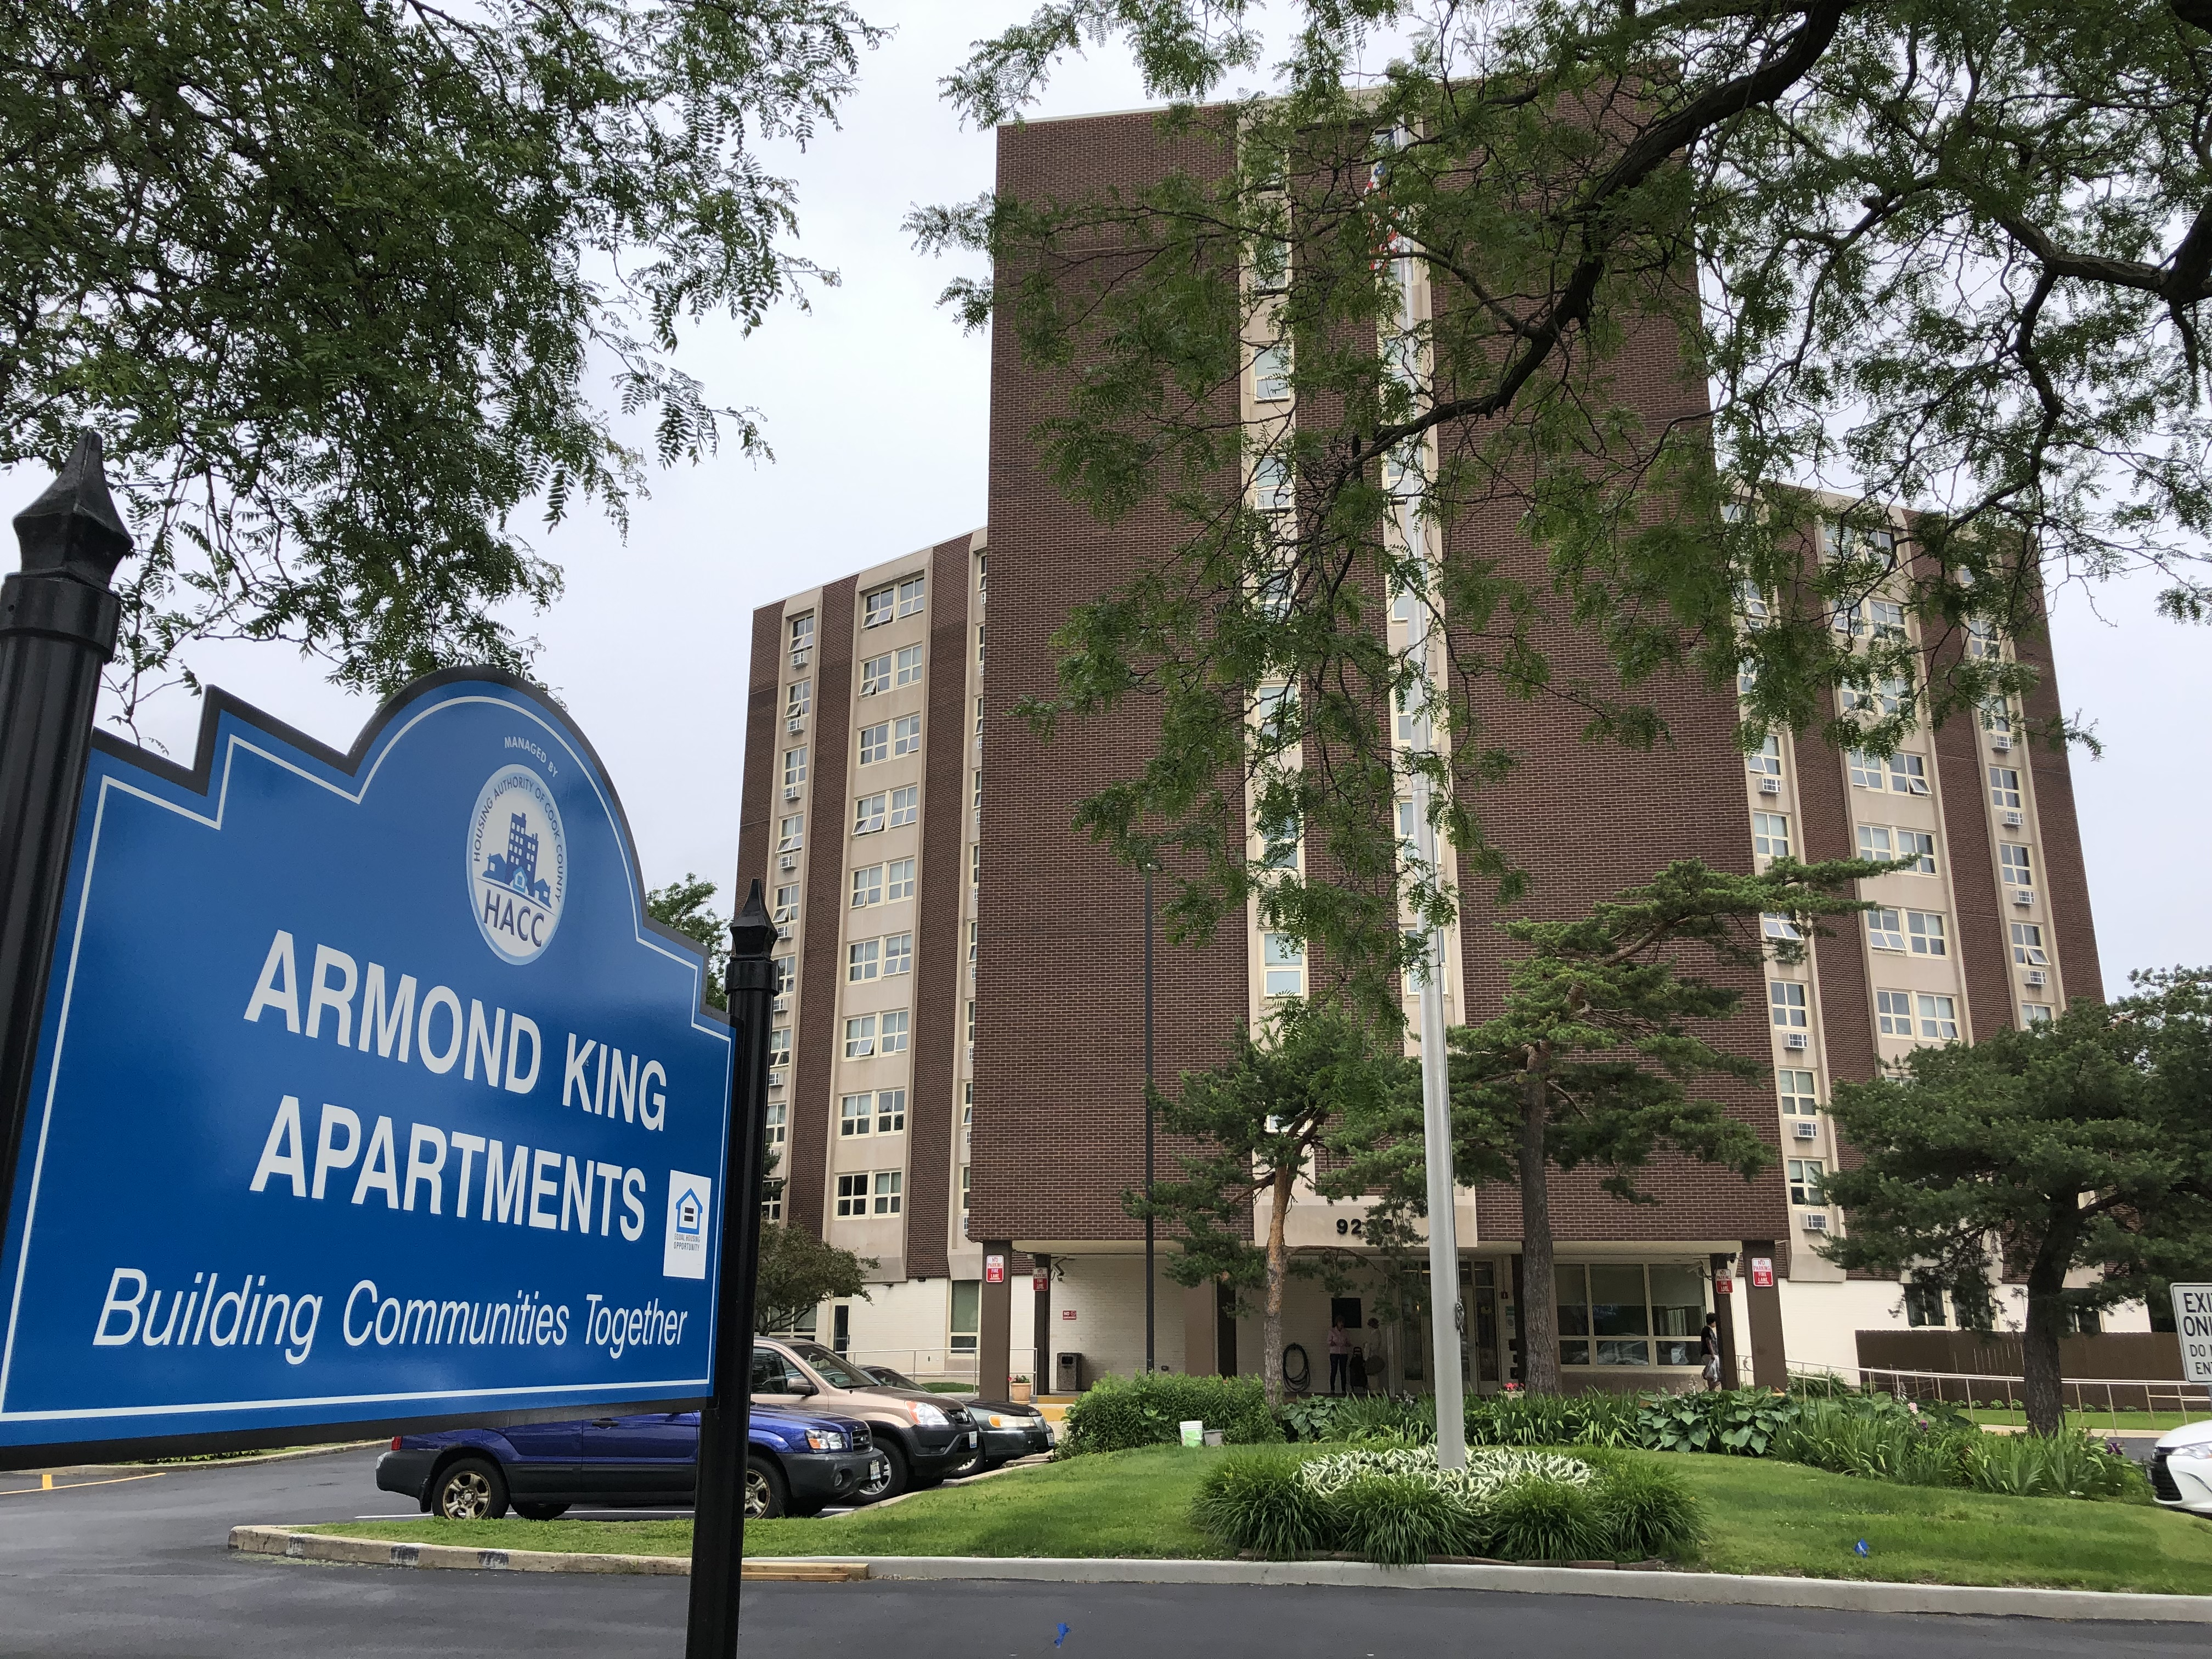 Image of Armond King Apartments